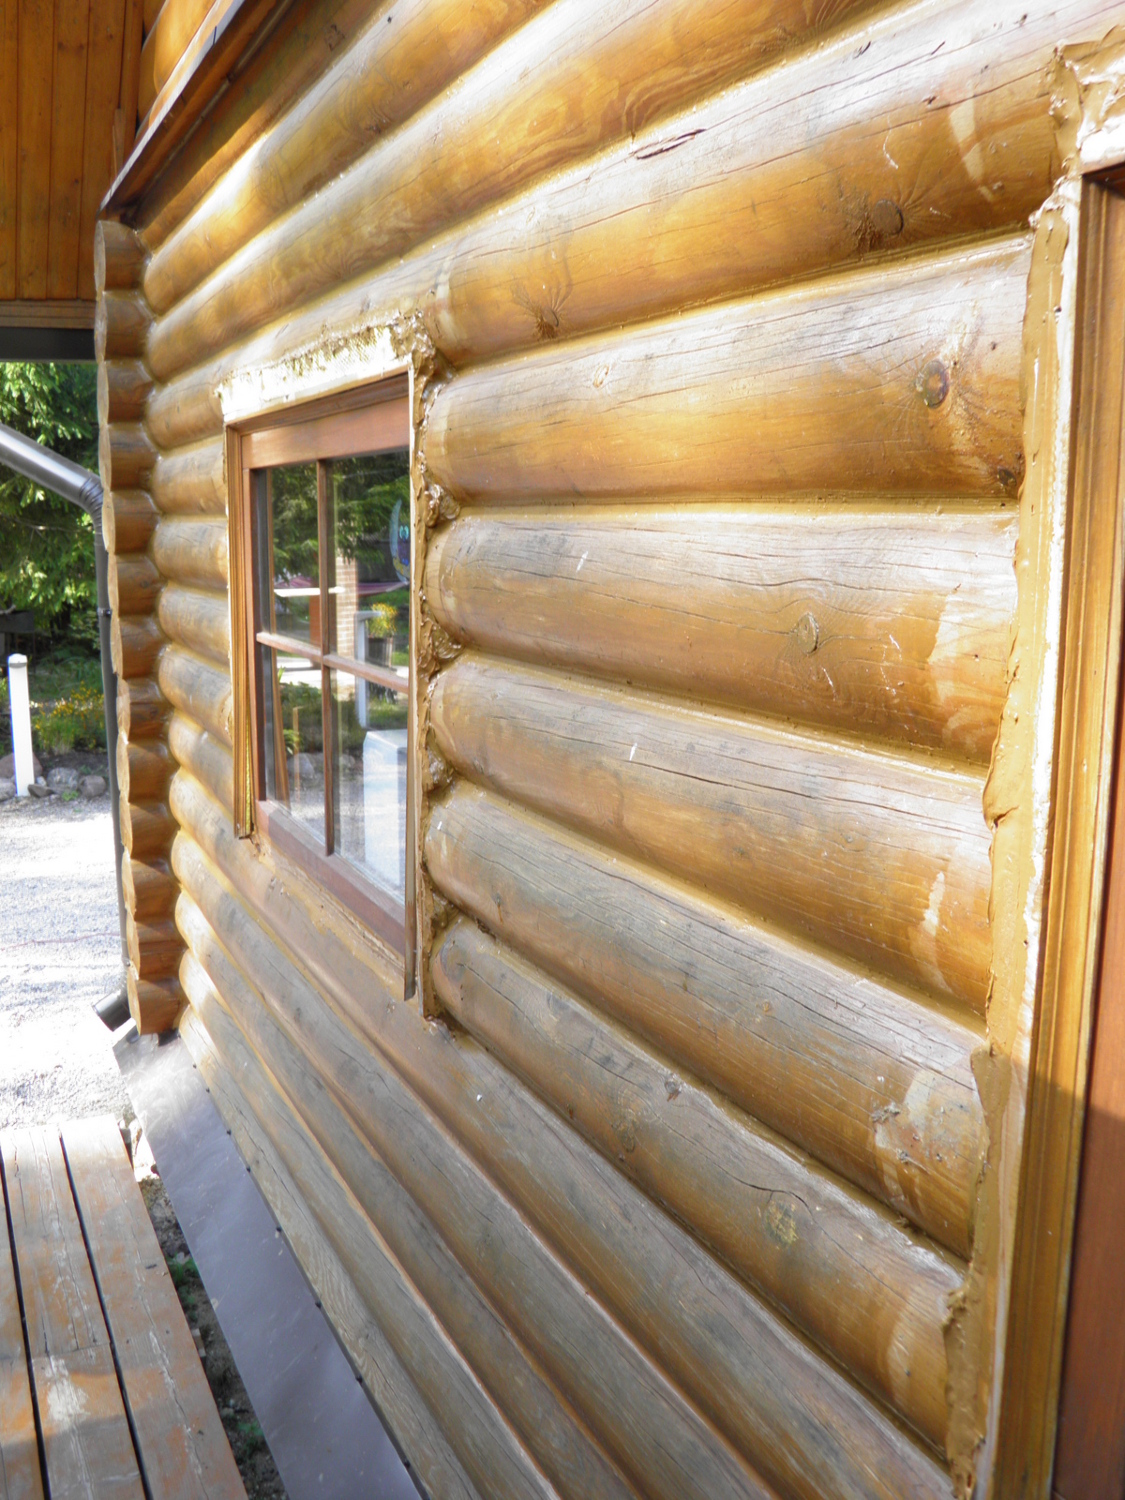 Sealant for log houses GULBUVE oregoni